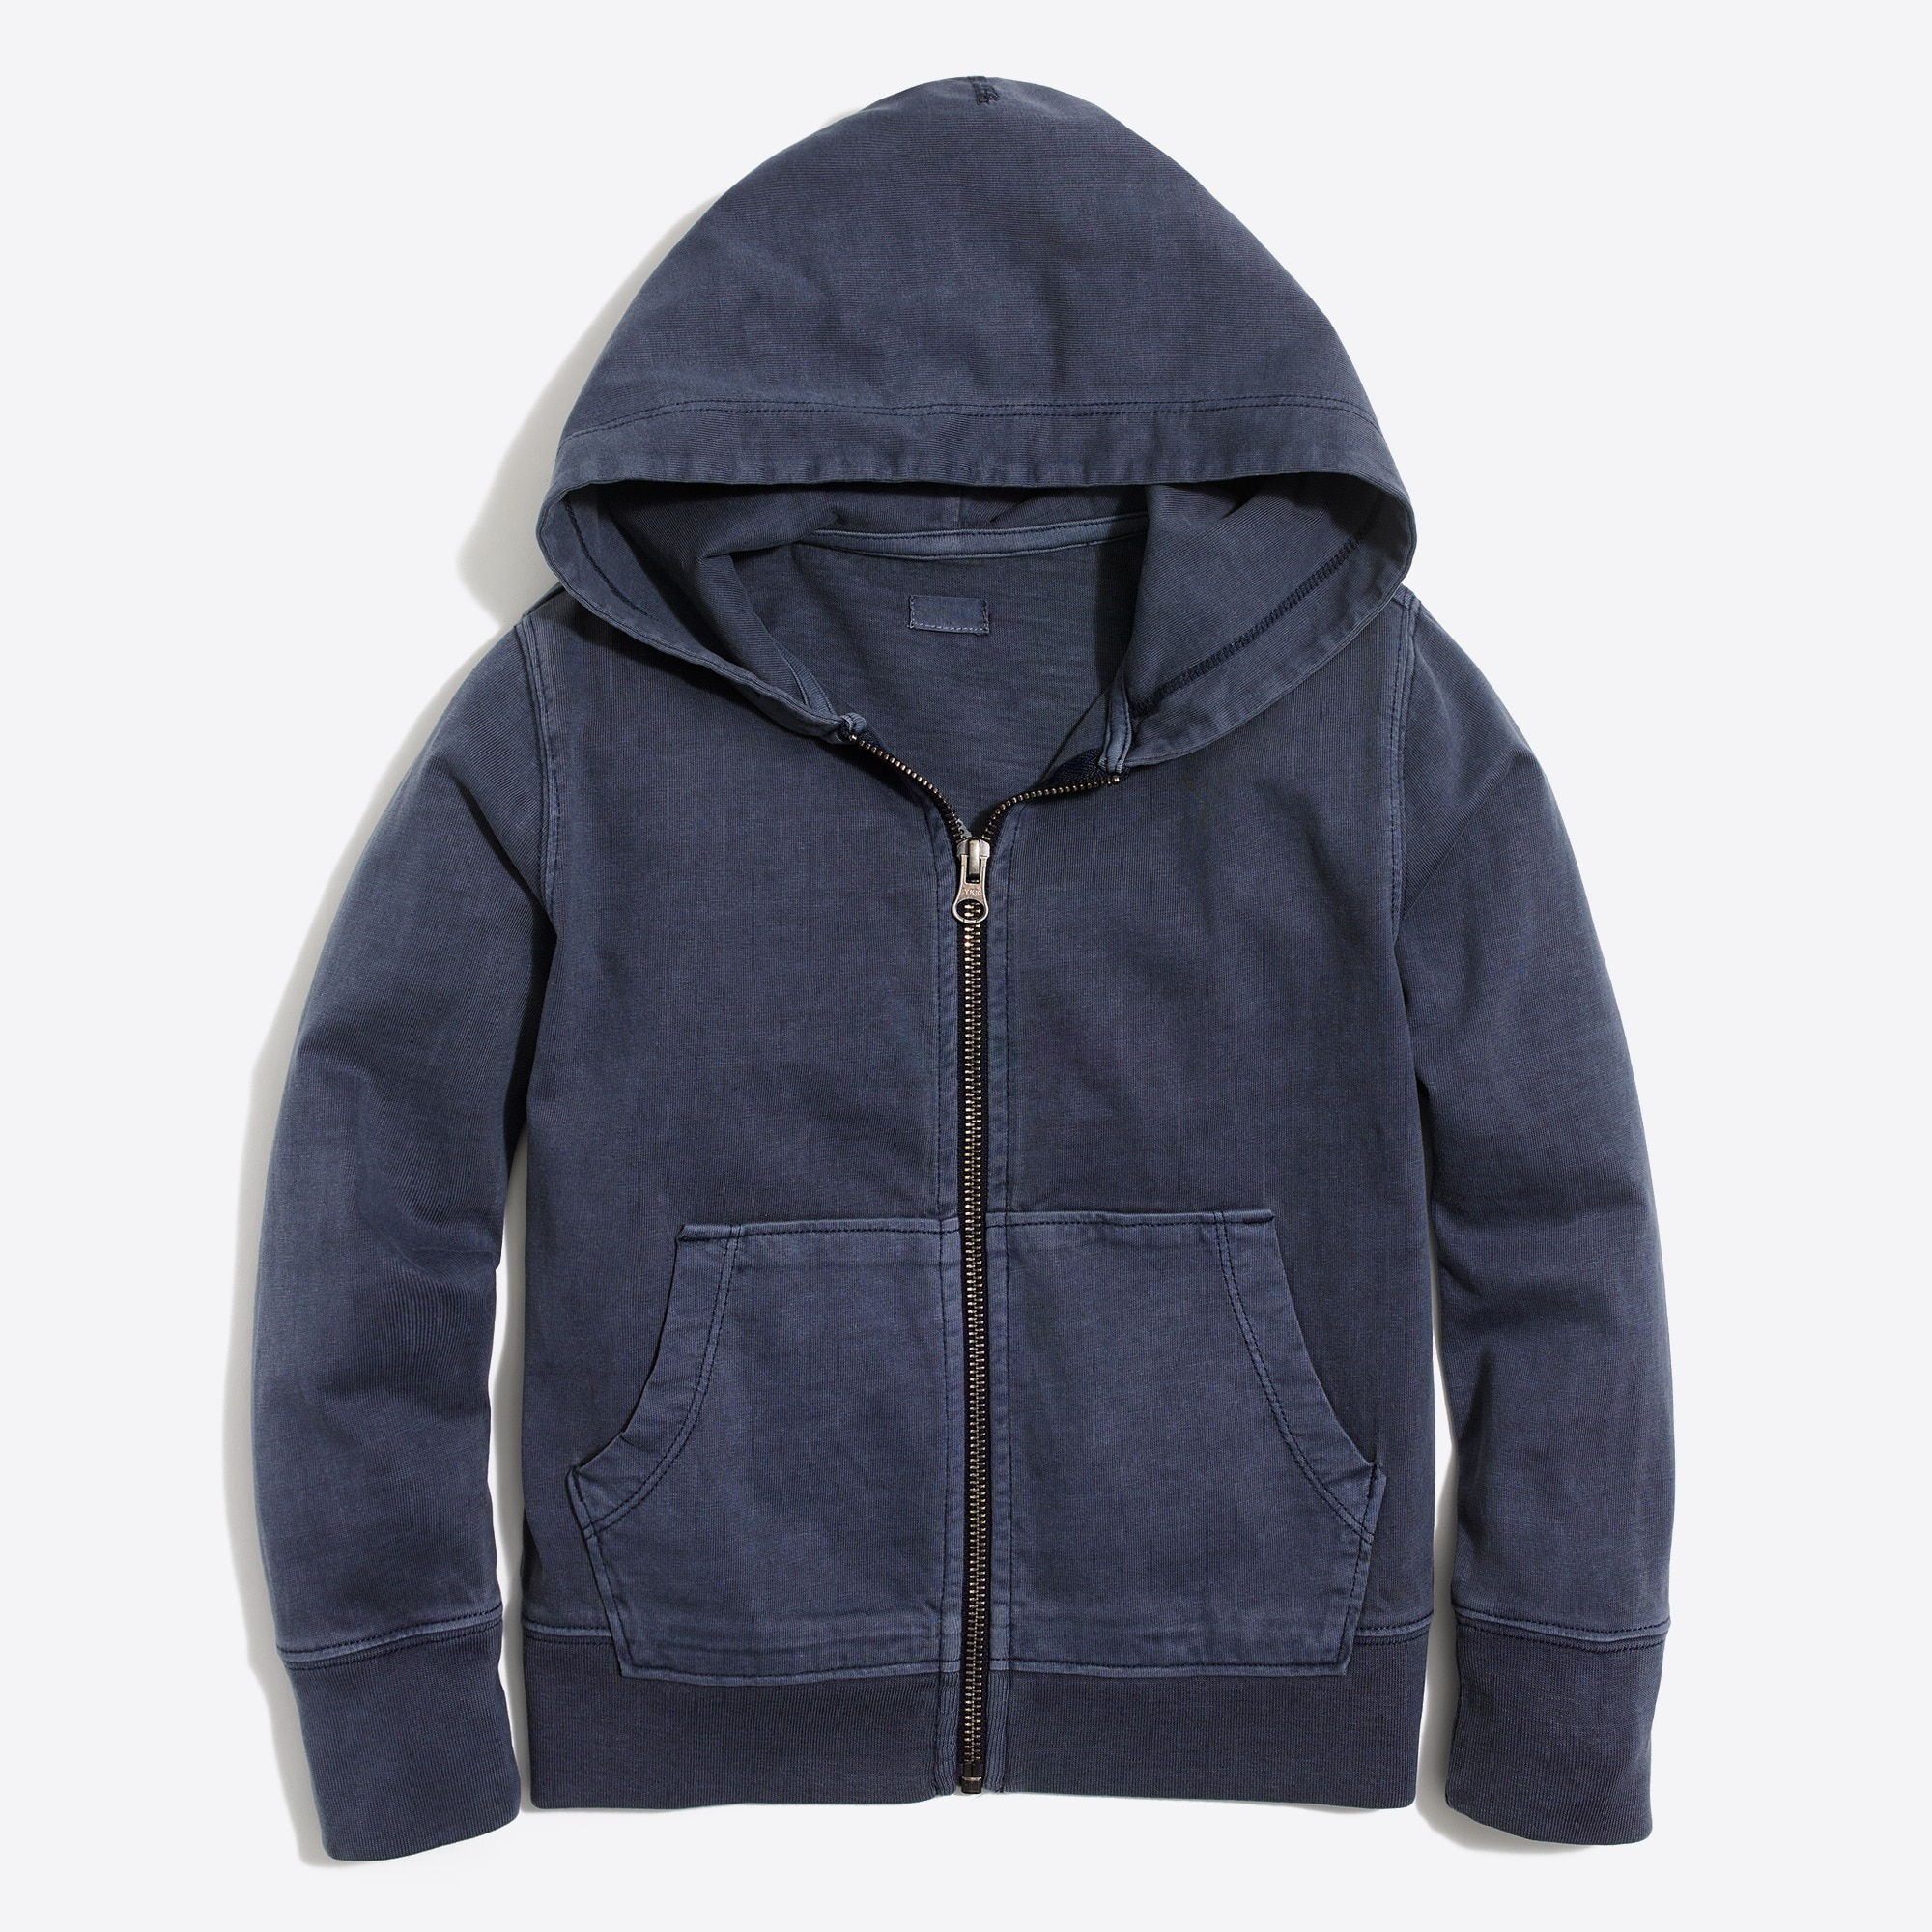 boys' garment-dyed hoodie : factoryboys sweatshirts